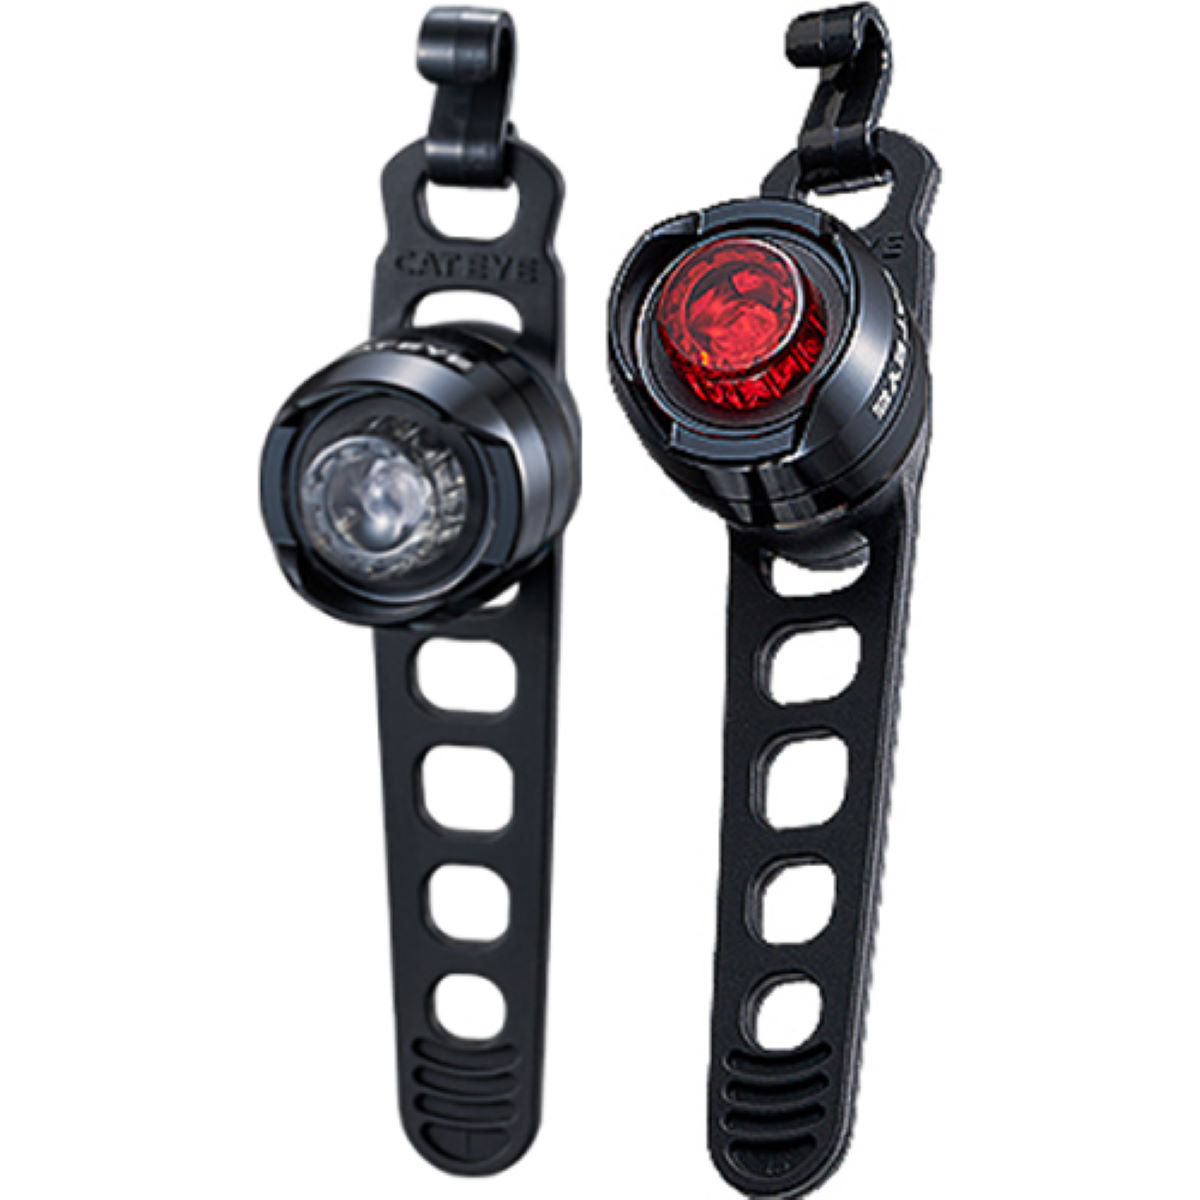 Cateye Orb Front & Rear Set Polished Black - Juegos de luces